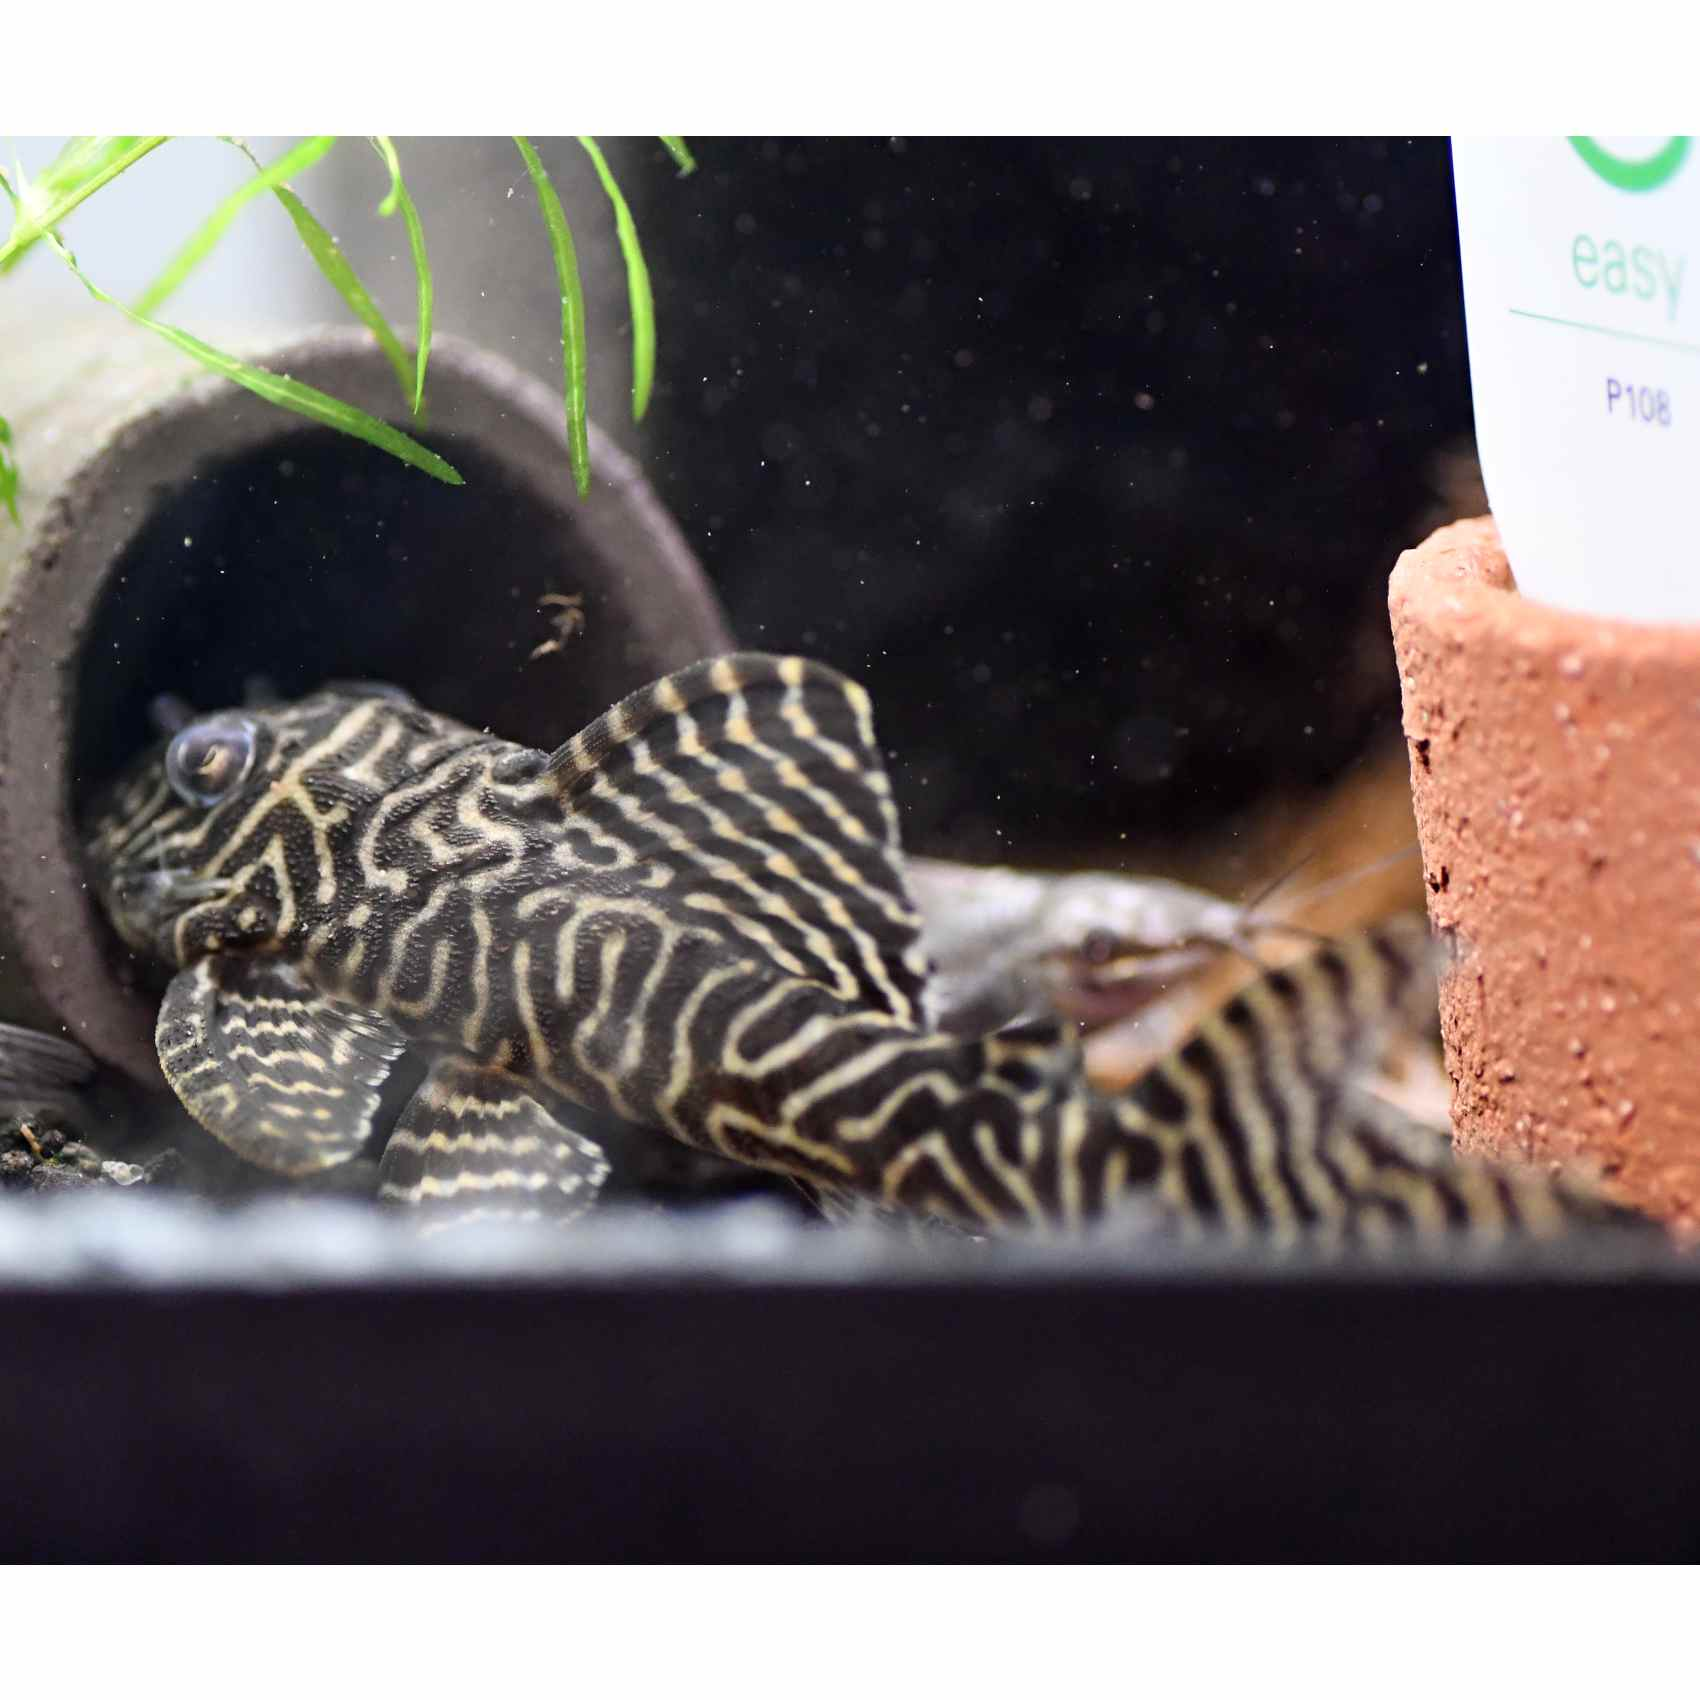 L066 - King Tiger Pleco - $75 00